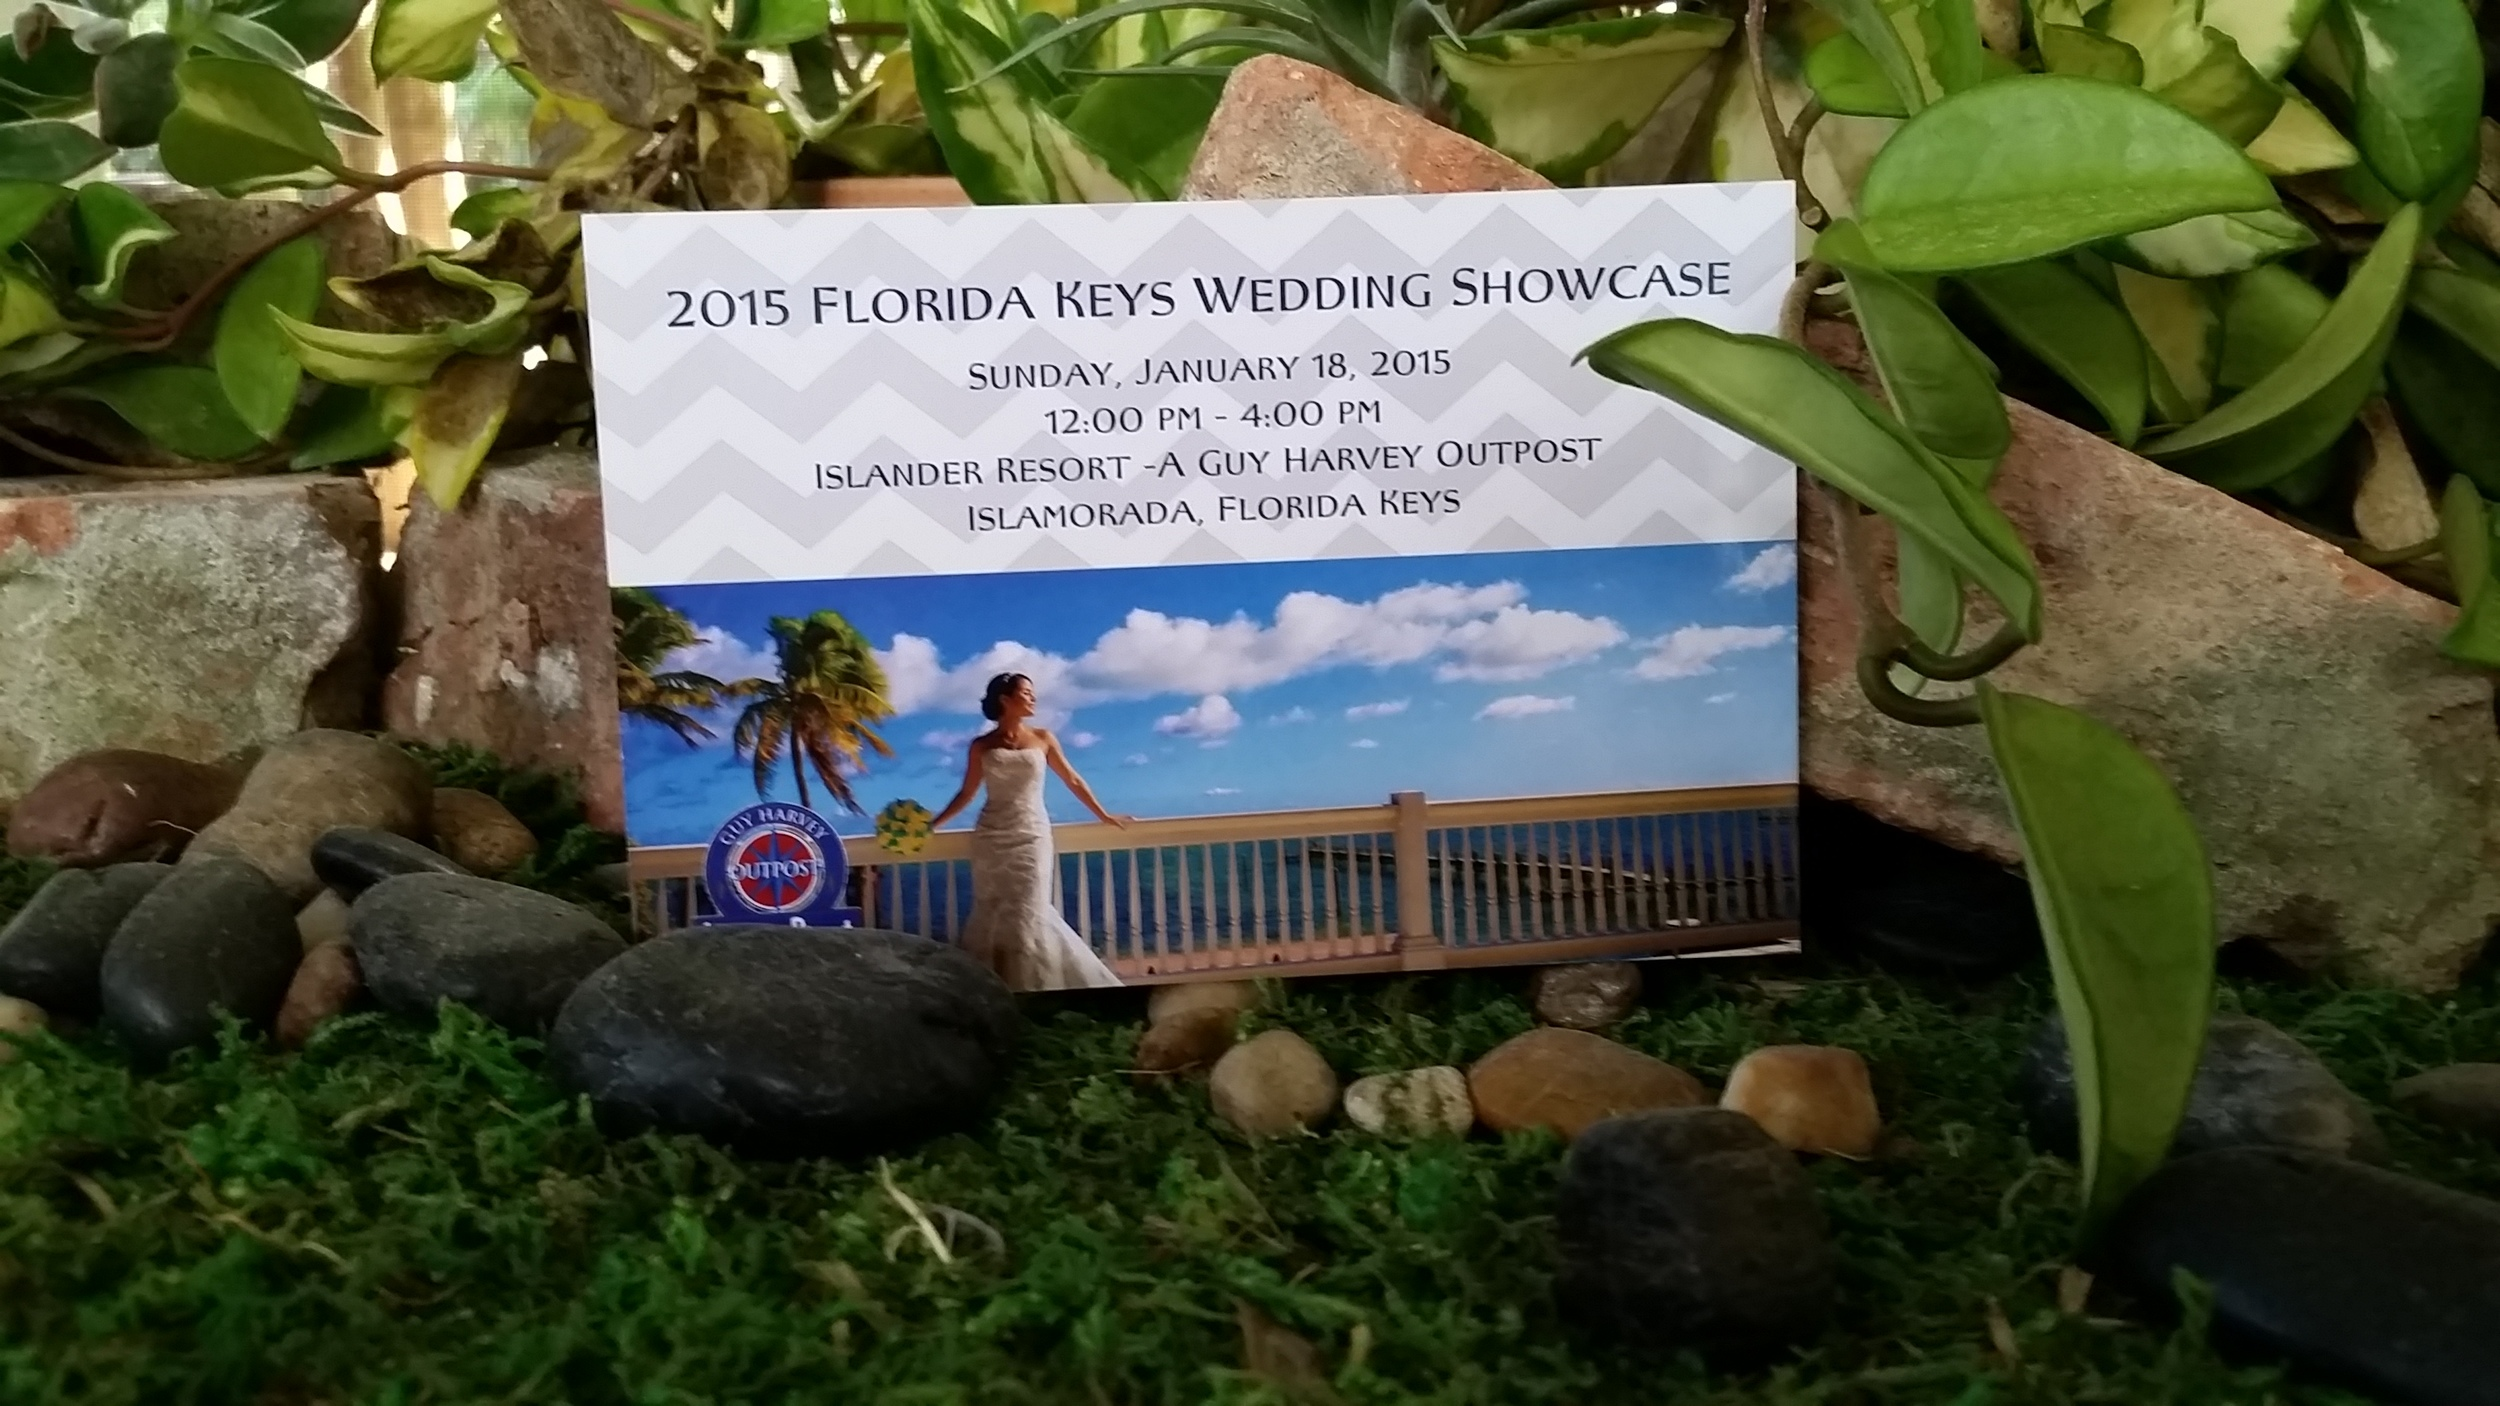 2015 Bridal Shows